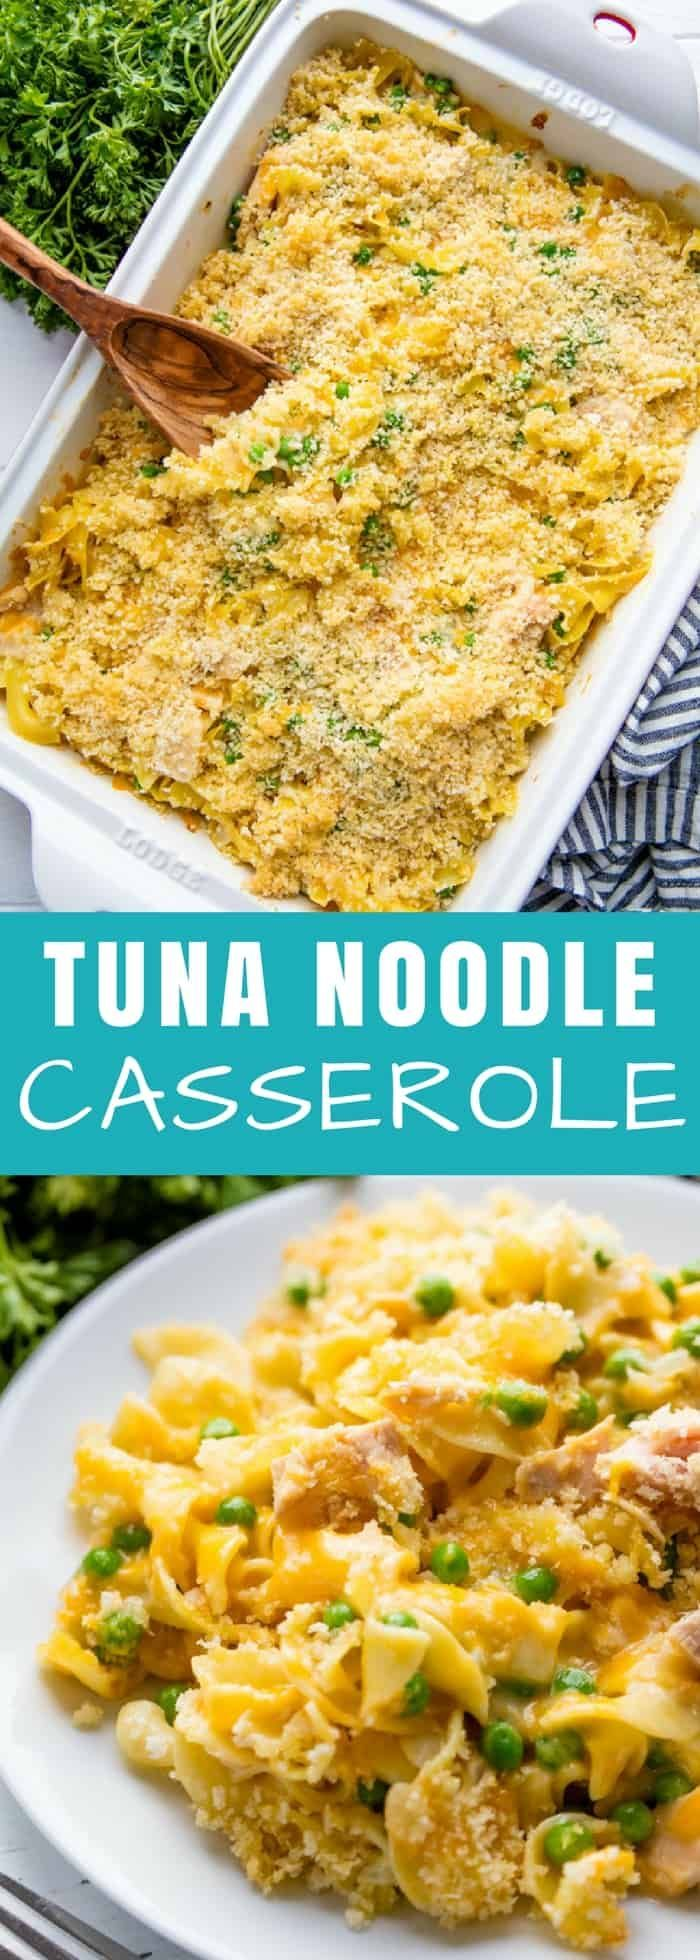 This cheesy Tuna Casserole has a #made-from-scratch sauce and a crunchy parmesan topping that puts this classic recipe over the top. Your family will love this version! #casserole #pasta #tuna #easydinner